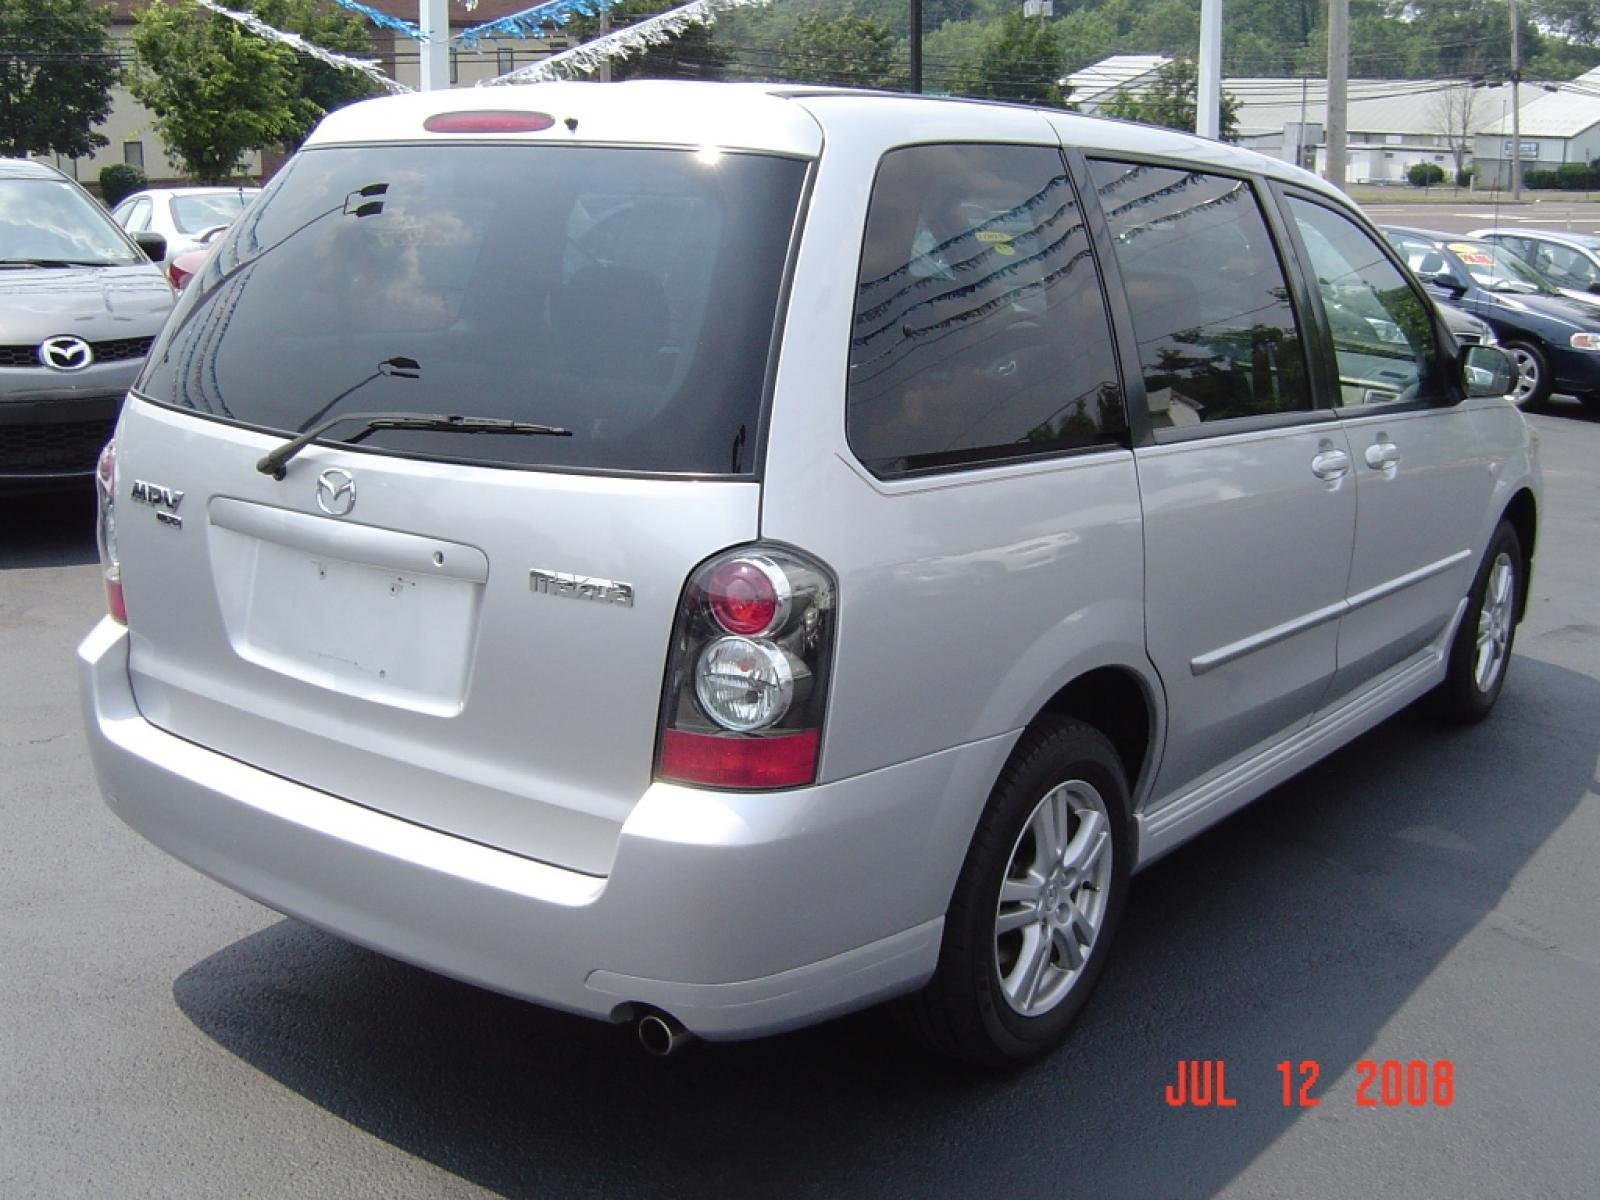 2004 Mazda Mpv Information And Photos Zombiedrive 2001 Engine Diagram 800 1024 1280 1600 Origin